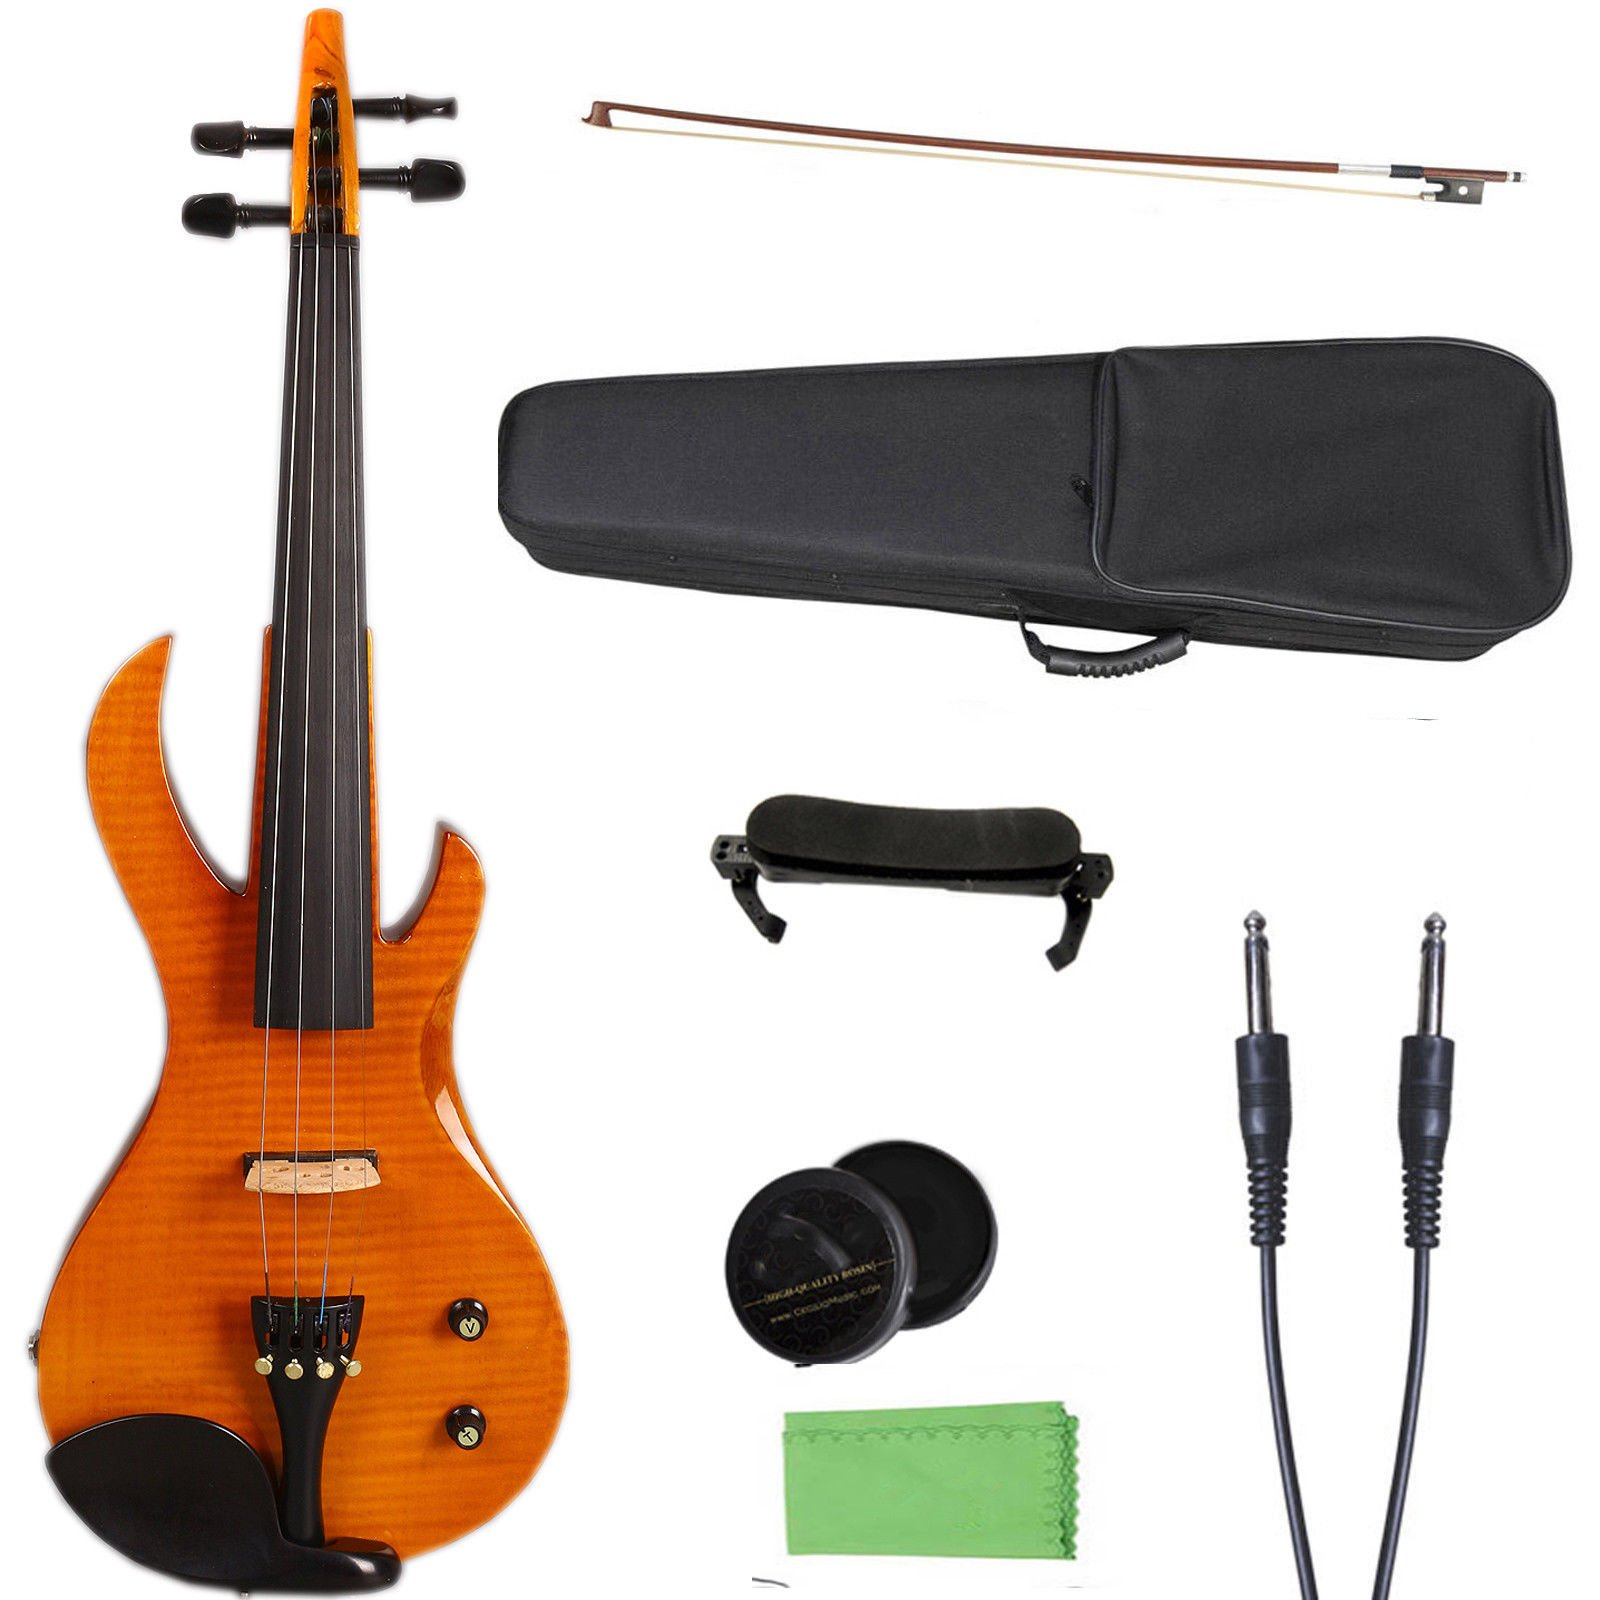 Yinfente 4/4 Violin Metallic Electric Violin Electric Guitar Shape Professional Violin Solid wood Full Size by yinfente